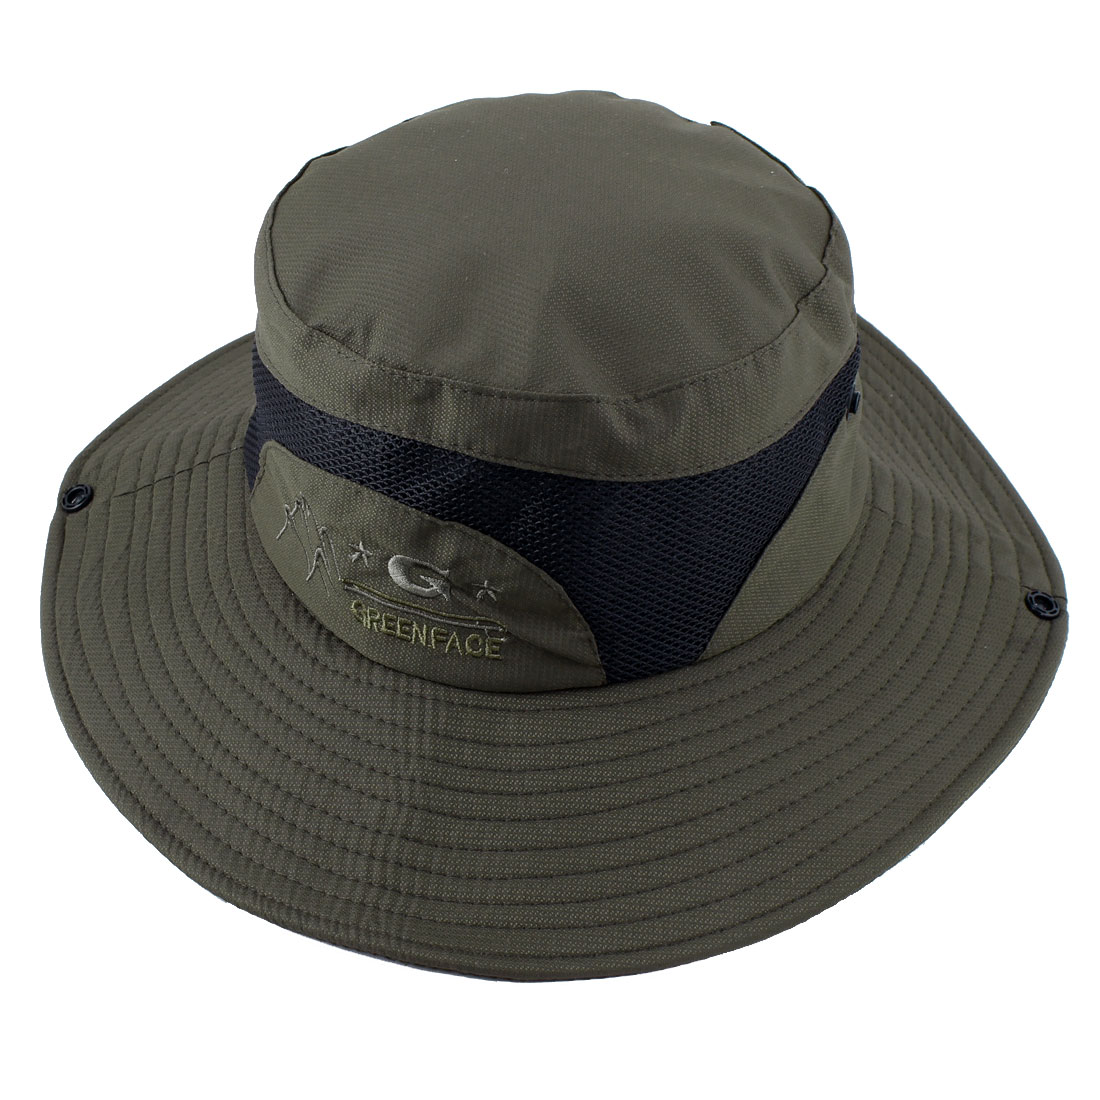 Fisherman Outdoor Fishing Climbing Cycling Adjustable Mesh Brim Floppy Summer Beach Cap Bucket Sun Hat Army Green